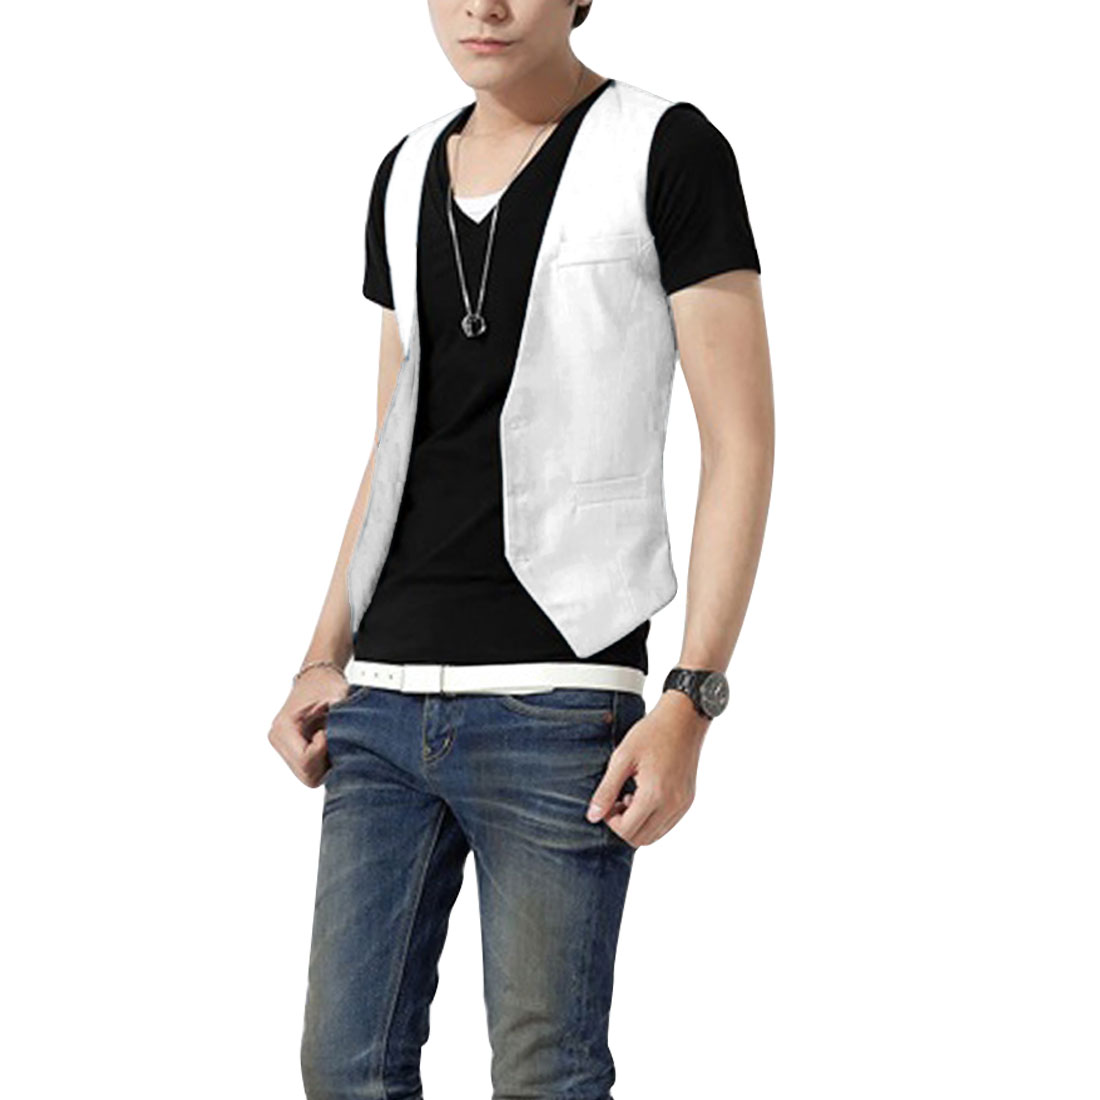 Men Buttons Up Front V Neck Pockets Leisure Pure White Vests S